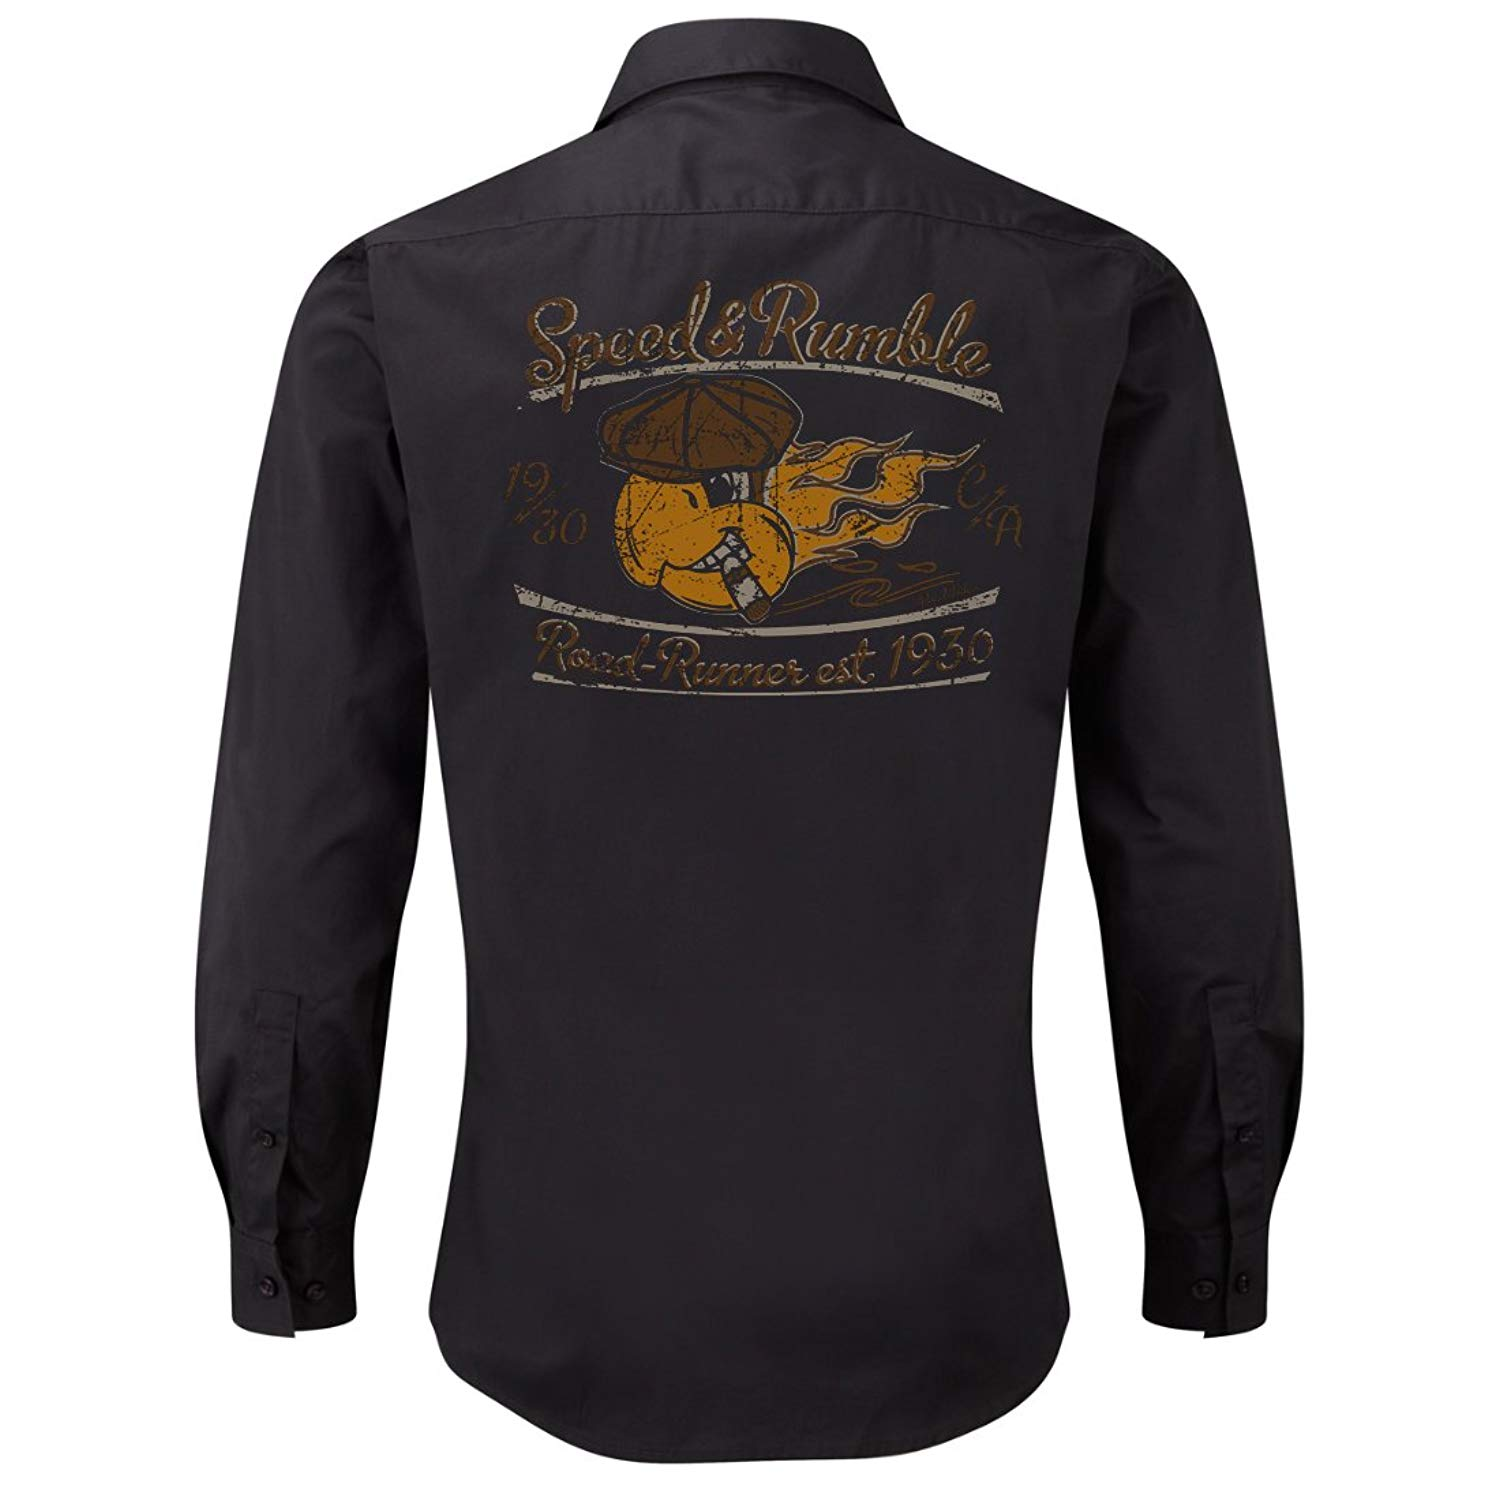 ROAD RODEO Rockabilly,Mechanic Work Shirt, Longsleeve, Rock'n'Roll, Parrot, V8, US Car, Speed and Rumble